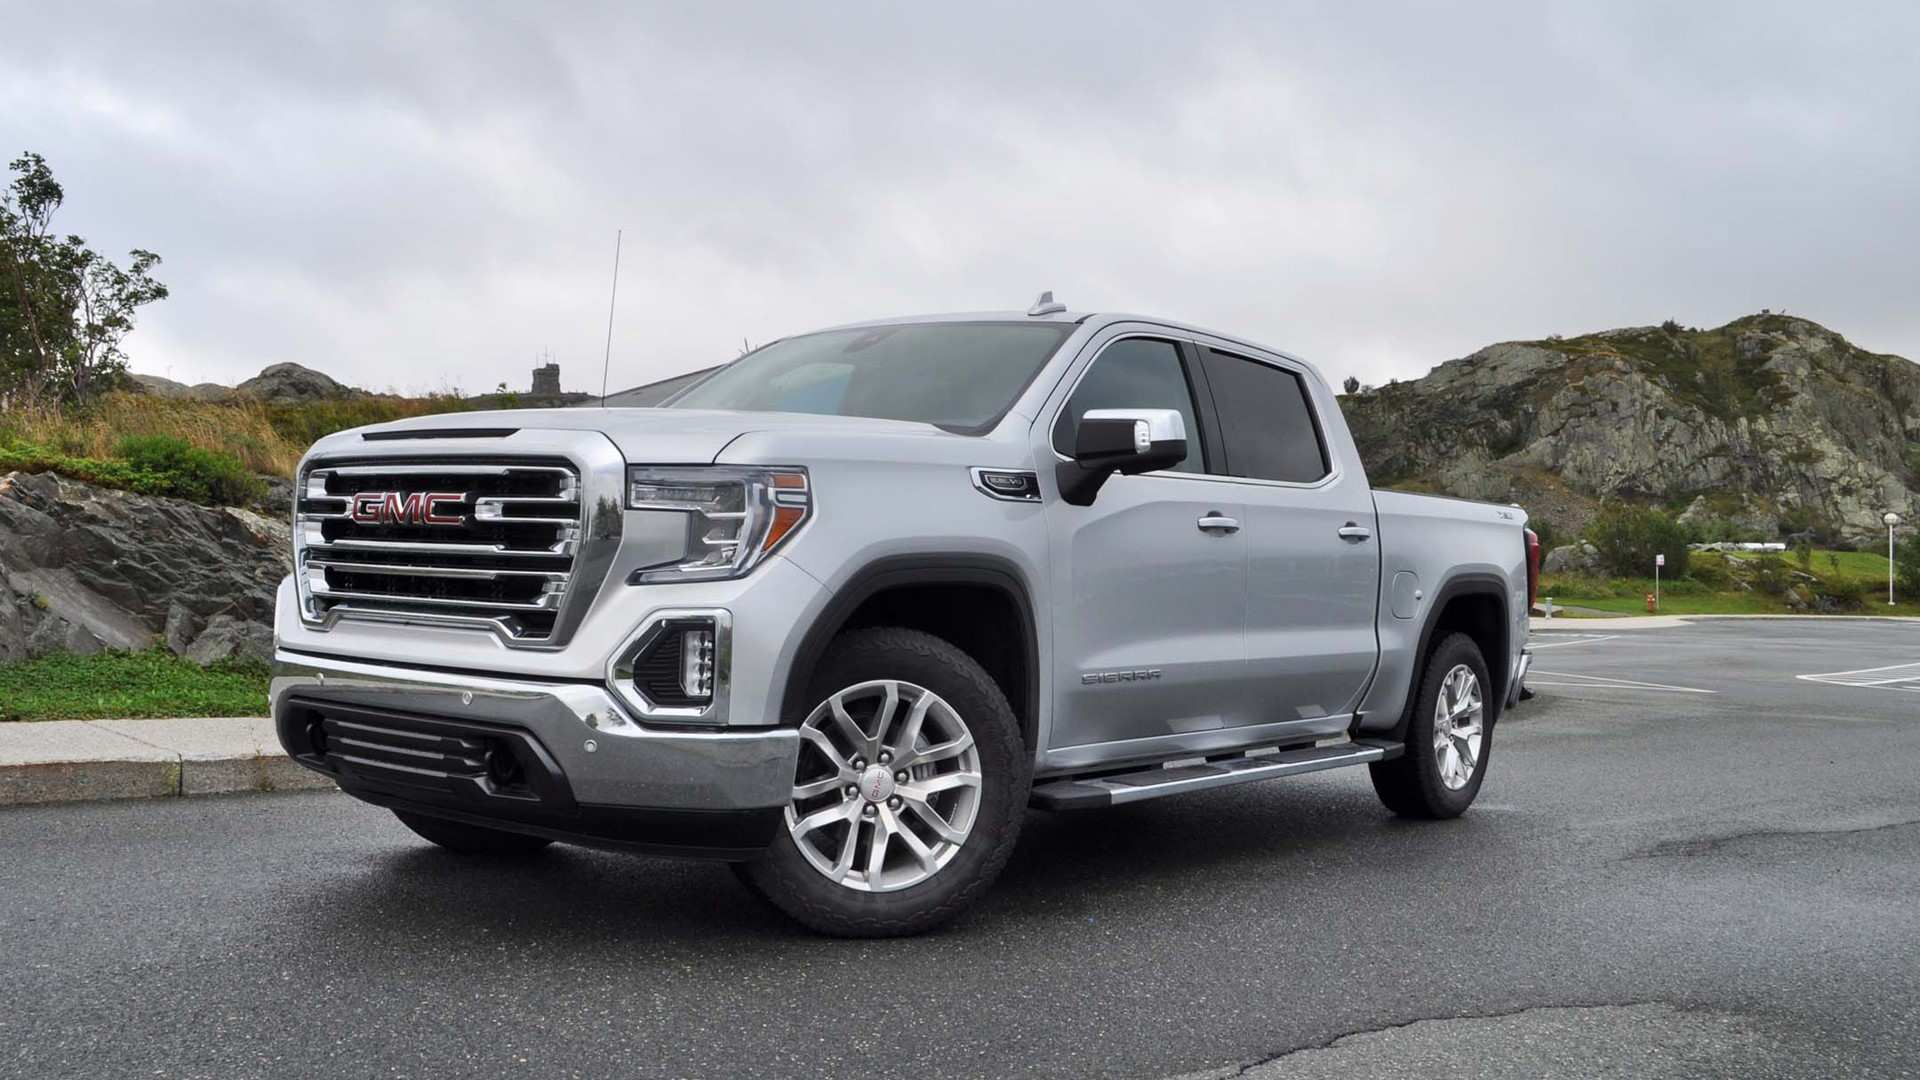 43 Gallery of 2019 Gmc Sierra Release Date Prices for 2019 Gmc Sierra Release Date